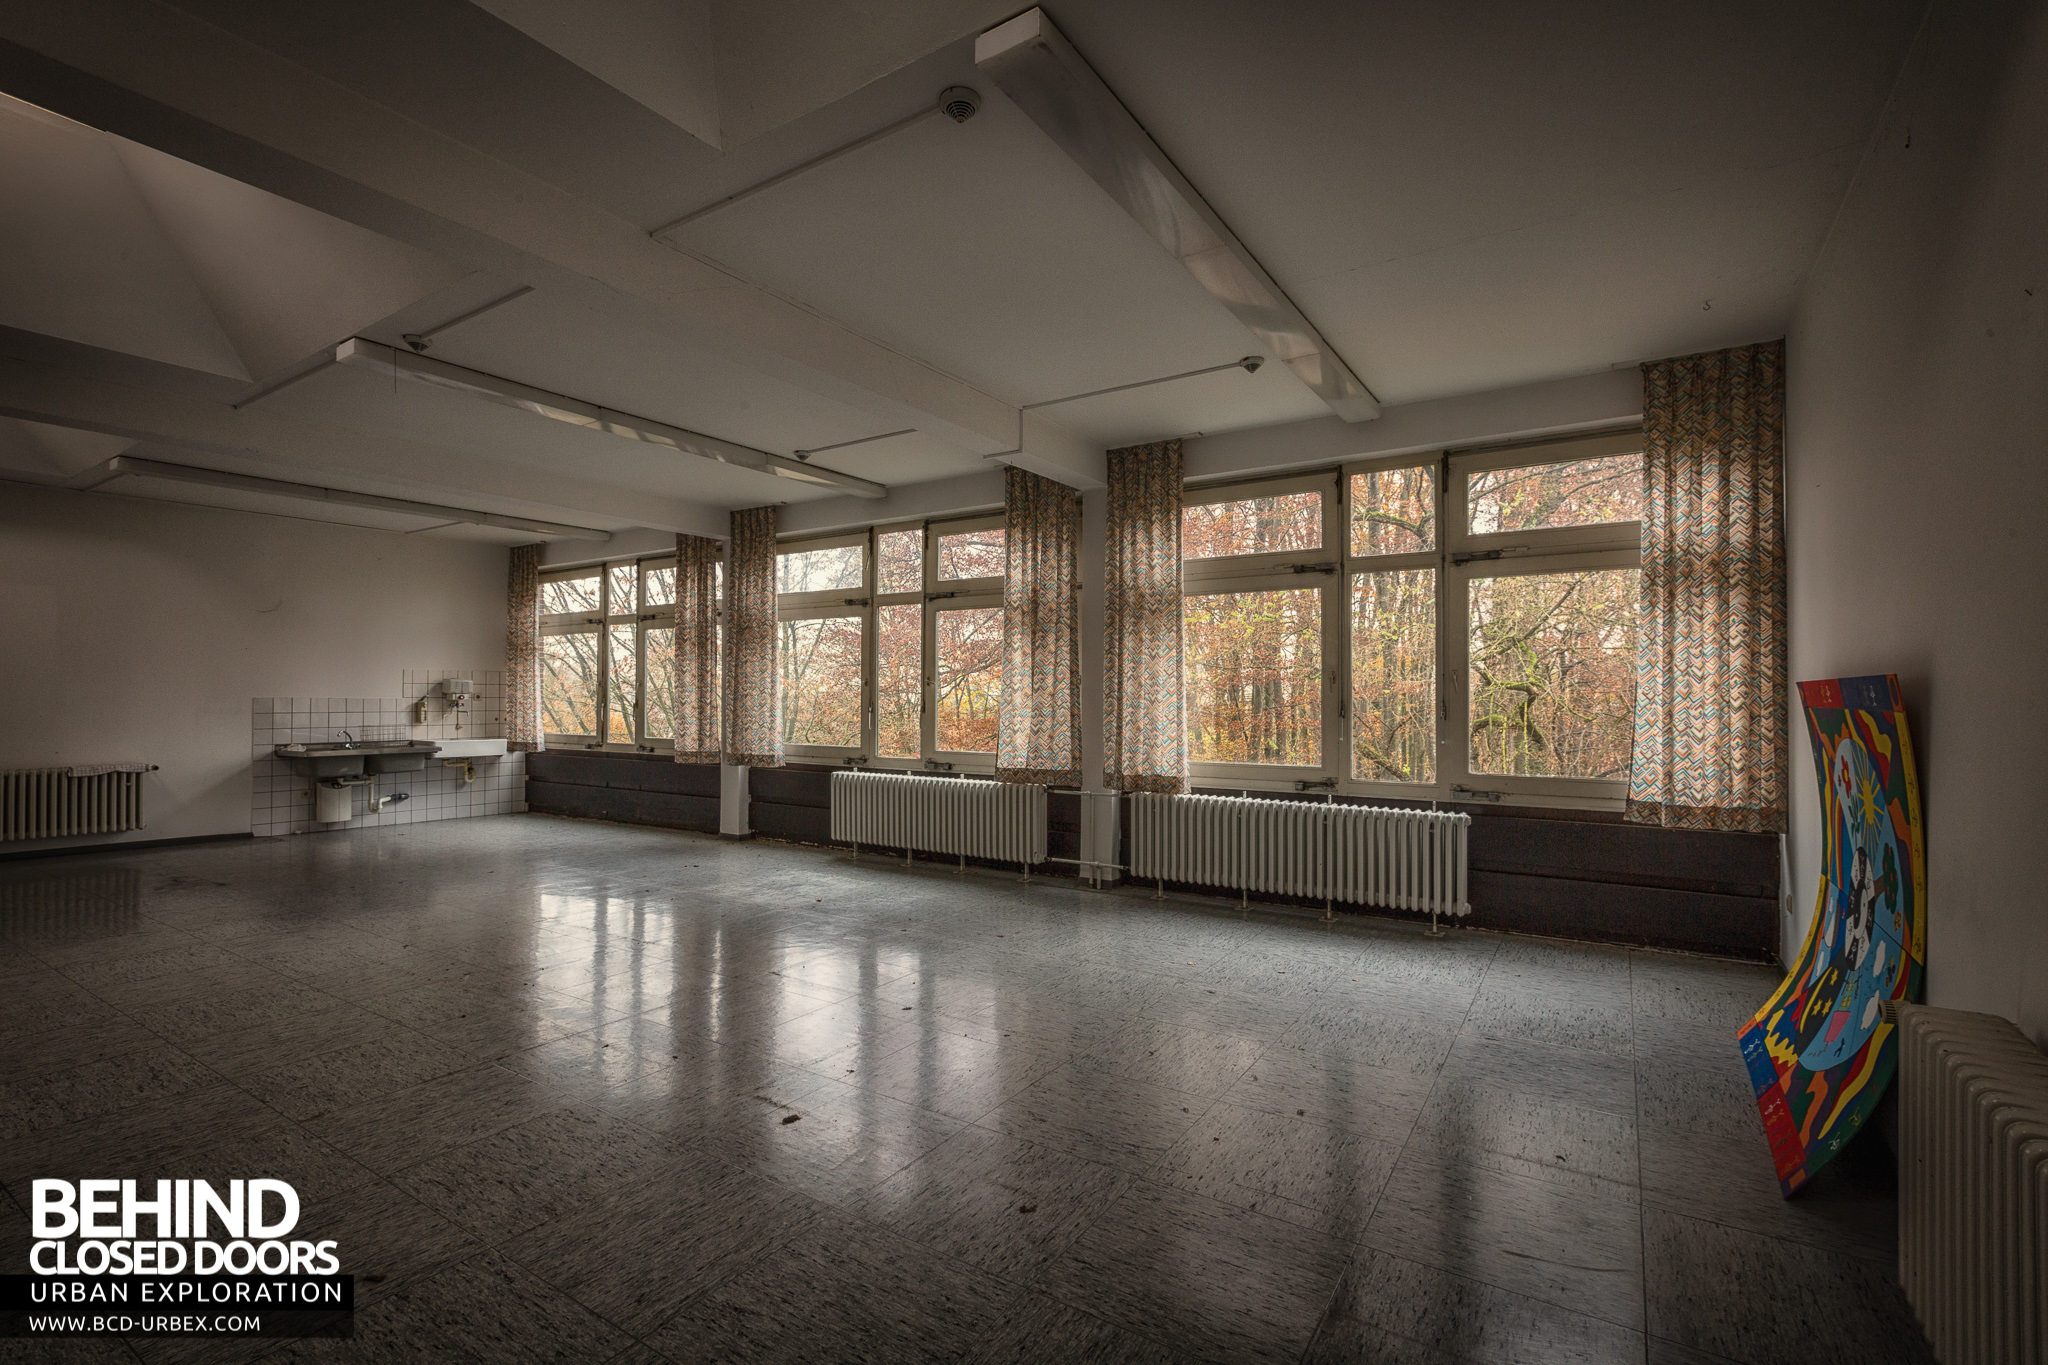 Psychiatrie V Abandoned Hospital Germany  Urbex  Behind Closed Doors Urban Exploring